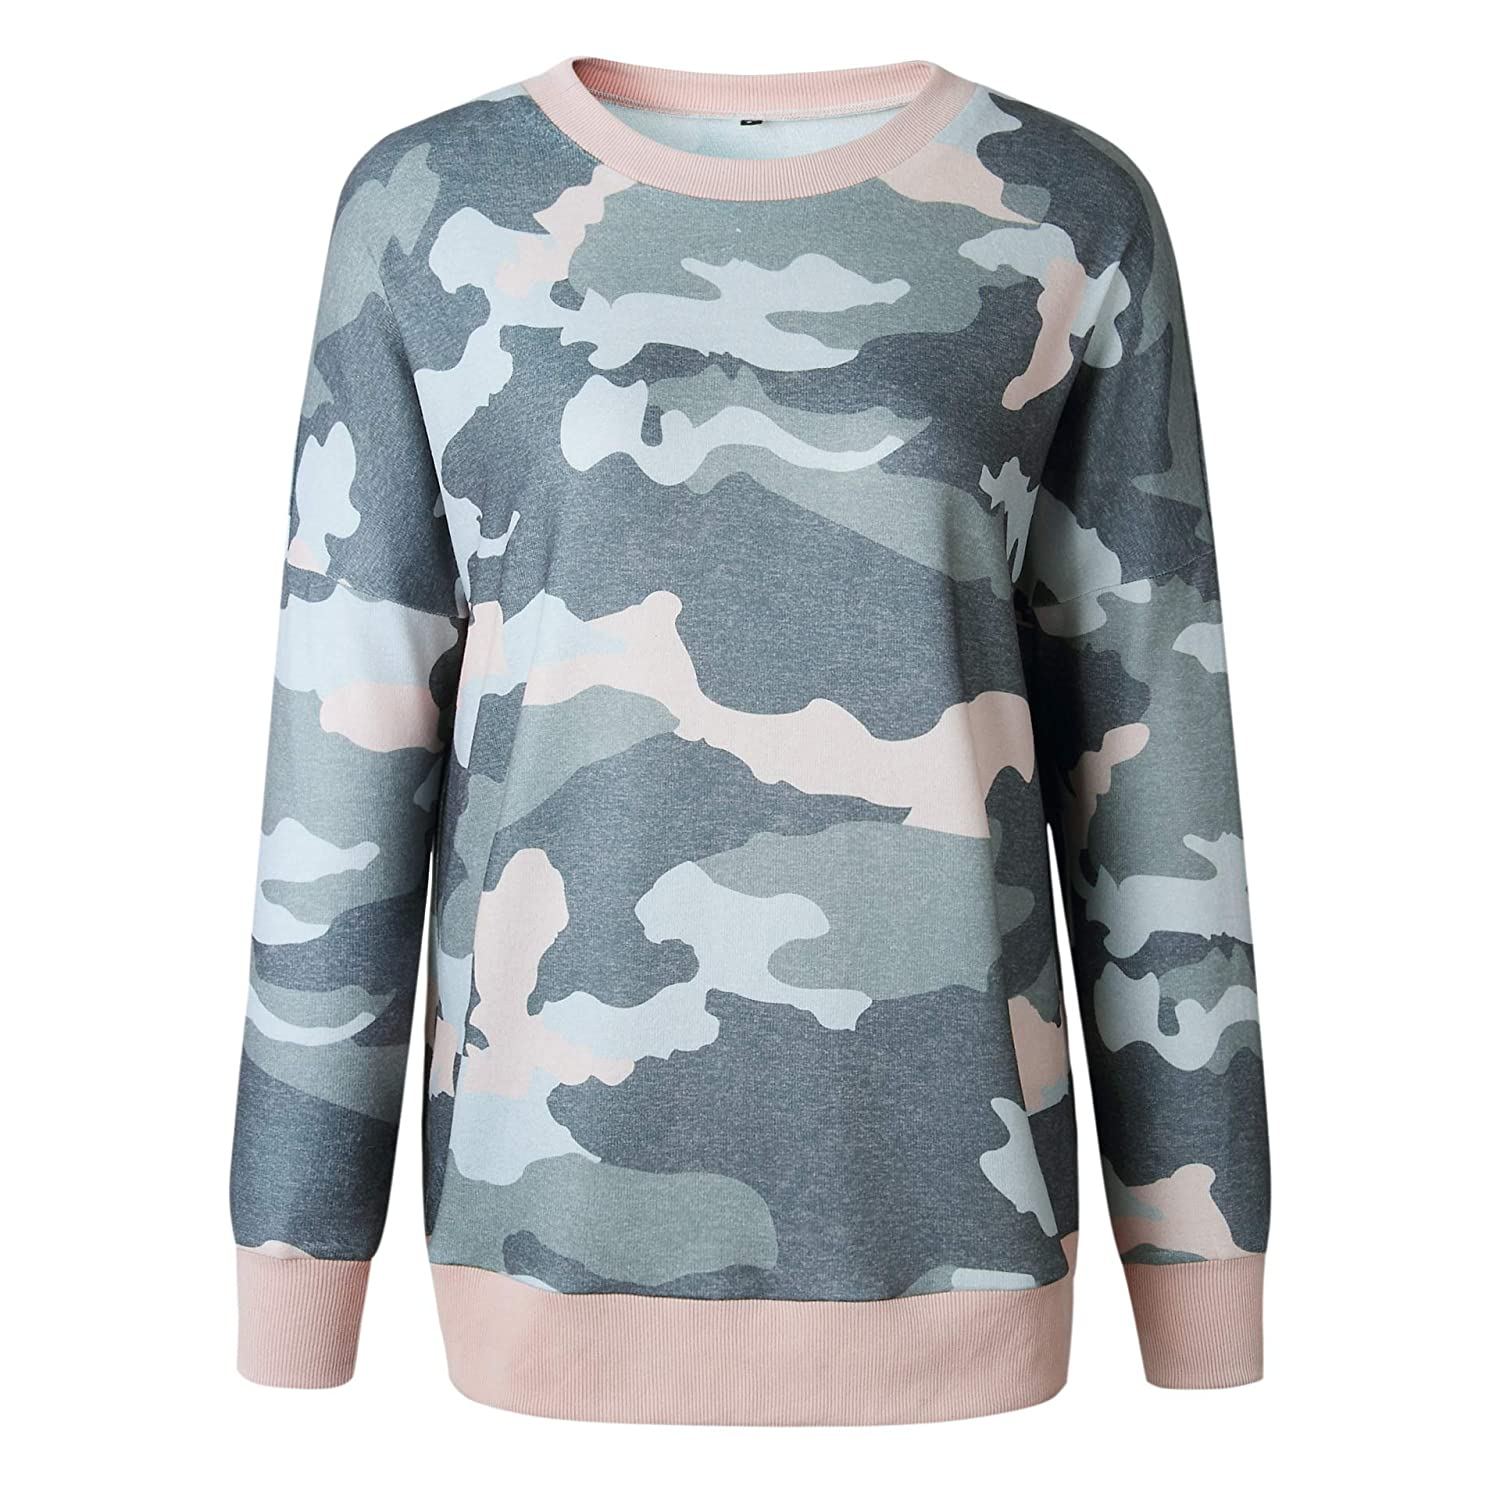 0479cc8ed0 ECOWISH Women s Camouflage Print Casual Leopard Pullover Long Sleeve  Sweatshirts Top Blouse at Amazon Women s Clothing store